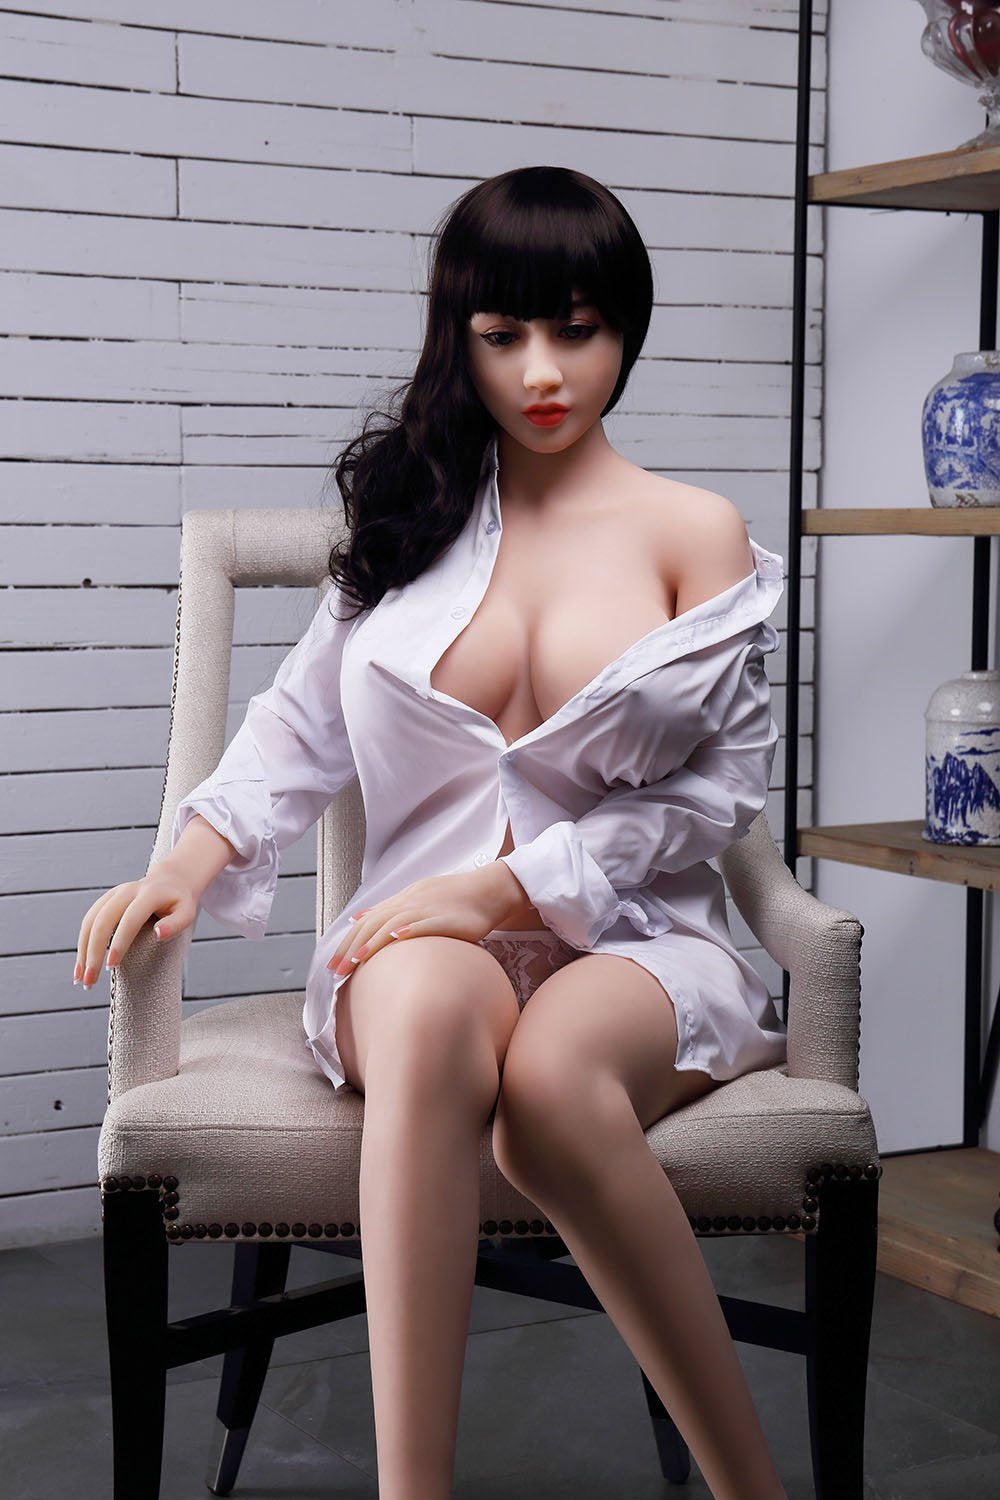 chloe 150cm brown hair curvy big boobs tpe wm asian small sex doll(10)